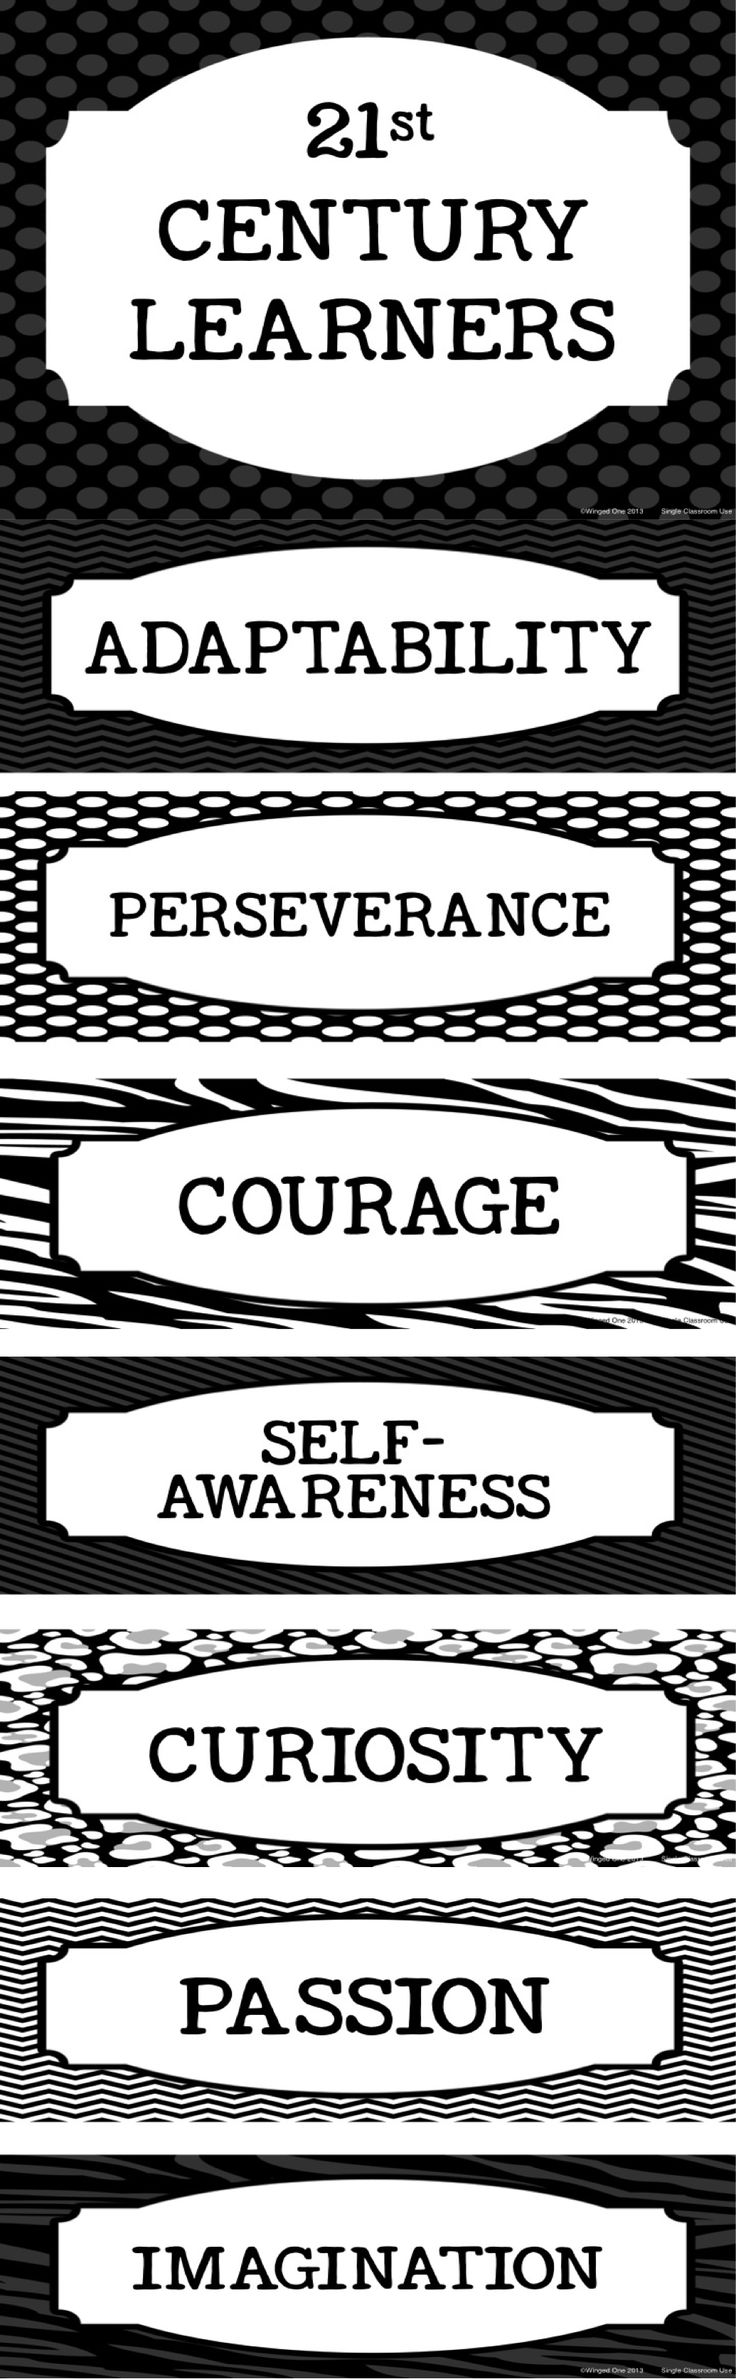 Characteristics of 21st Century Learners Posters: Black and White Set (also available in a color set) - Adaptability, Perseverance, Courage, Self-Awareness, Curiosity, Passion, Imagination $